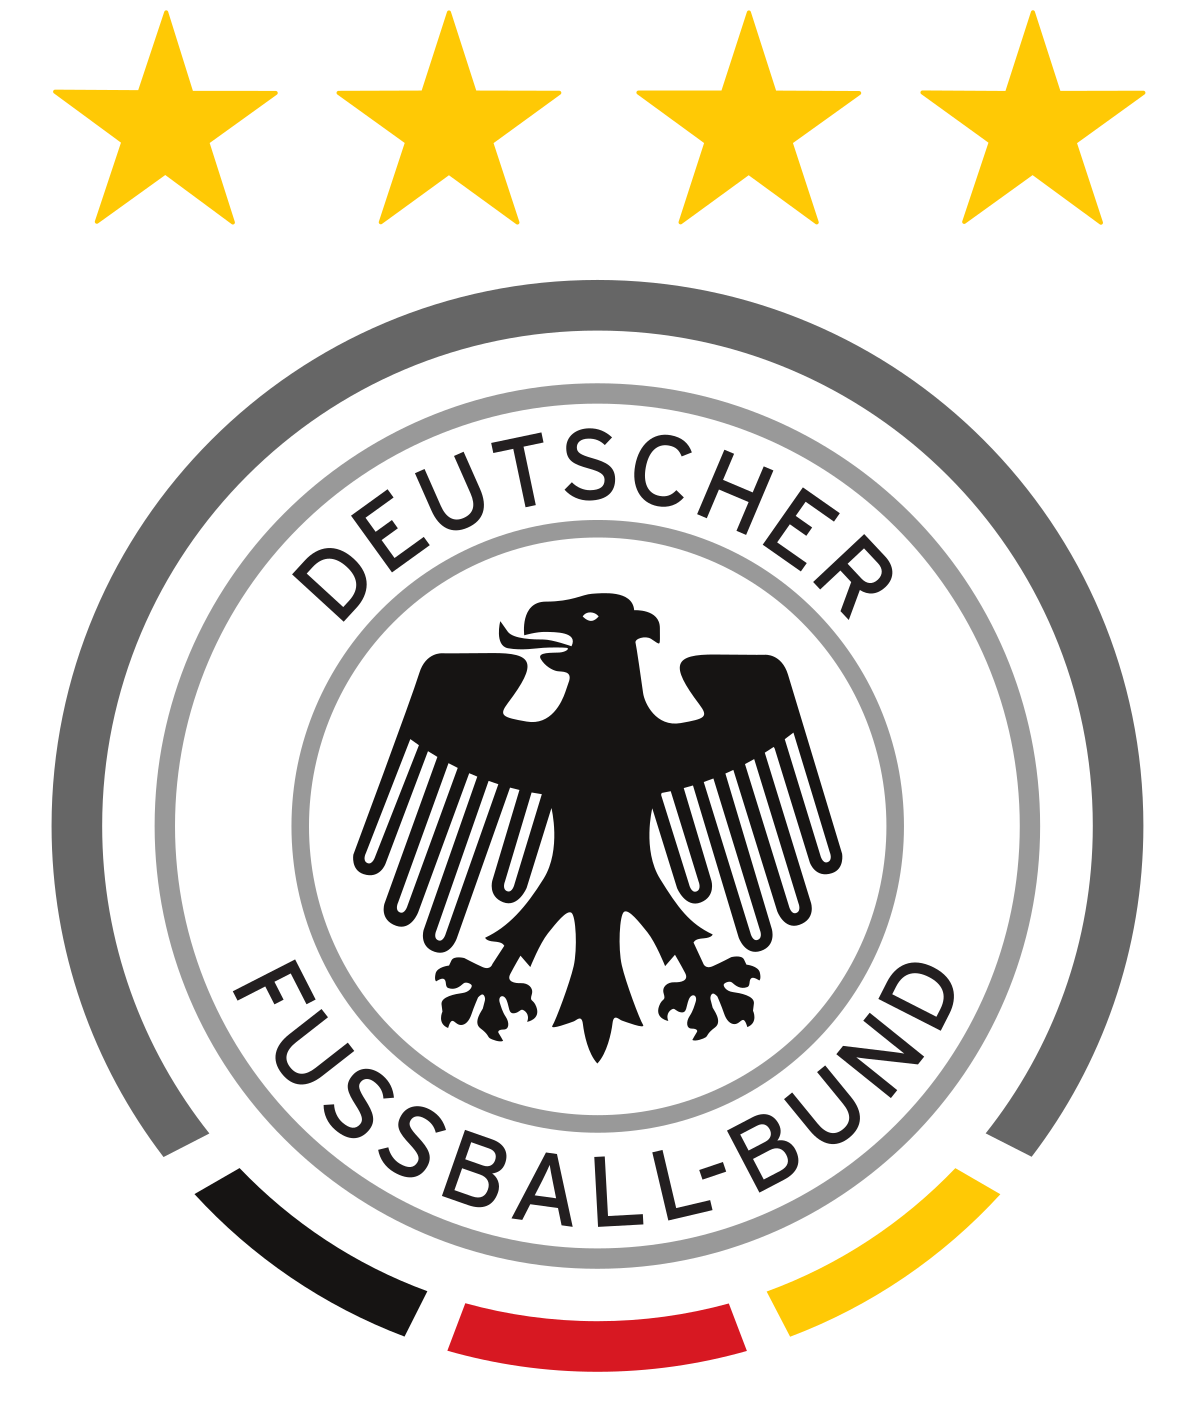 Football championship winners logo for t shirts clipart graphic library stock Germany national football team - Wikipedia graphic library stock